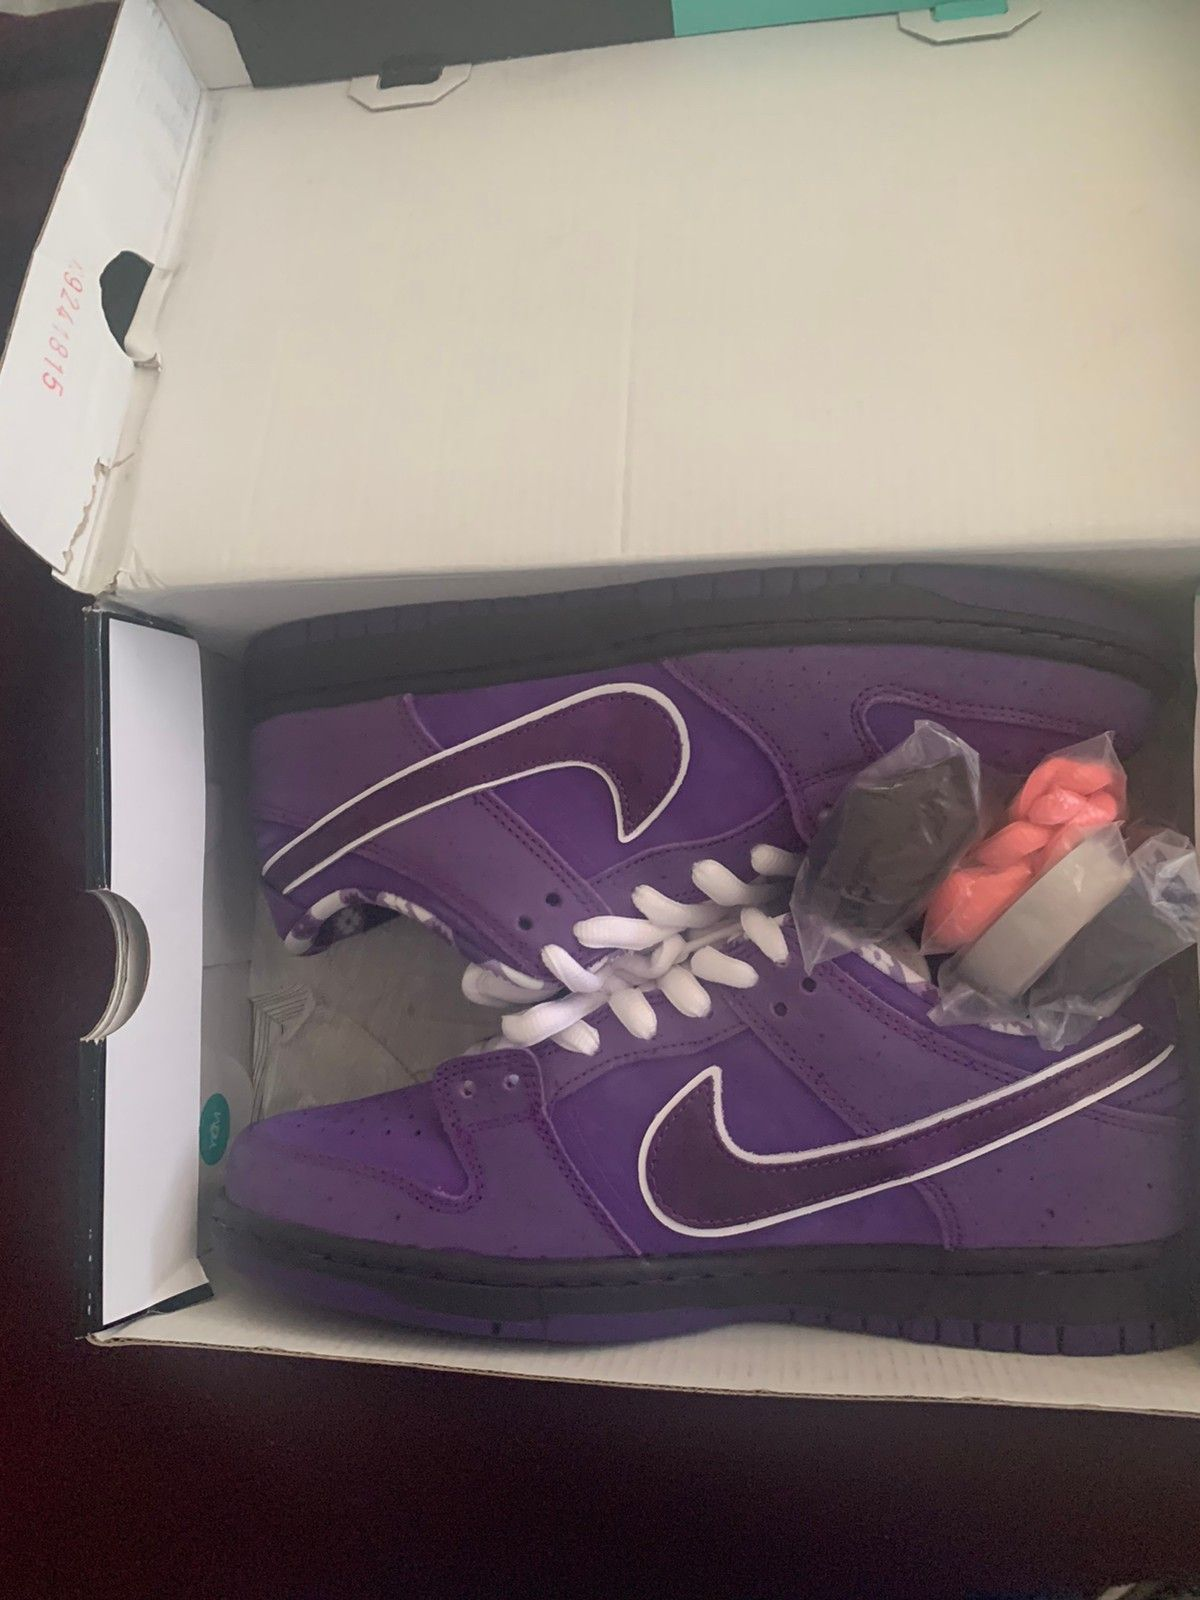 Nike sb purple lobster ds damaged box | FINN.no